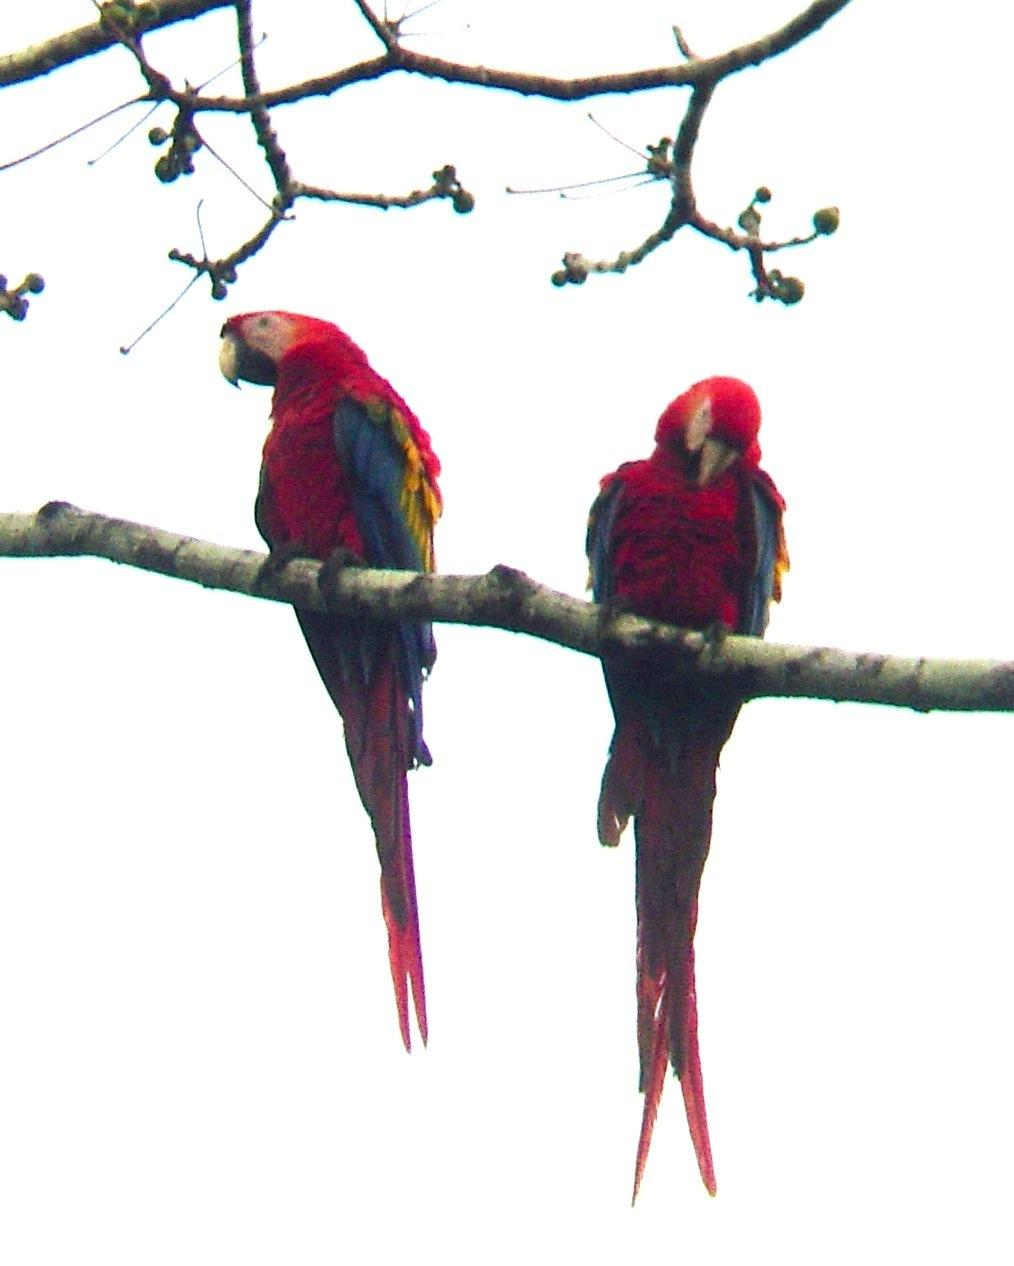 Scarlet Macaw Photo by Andrew T. Kinslow